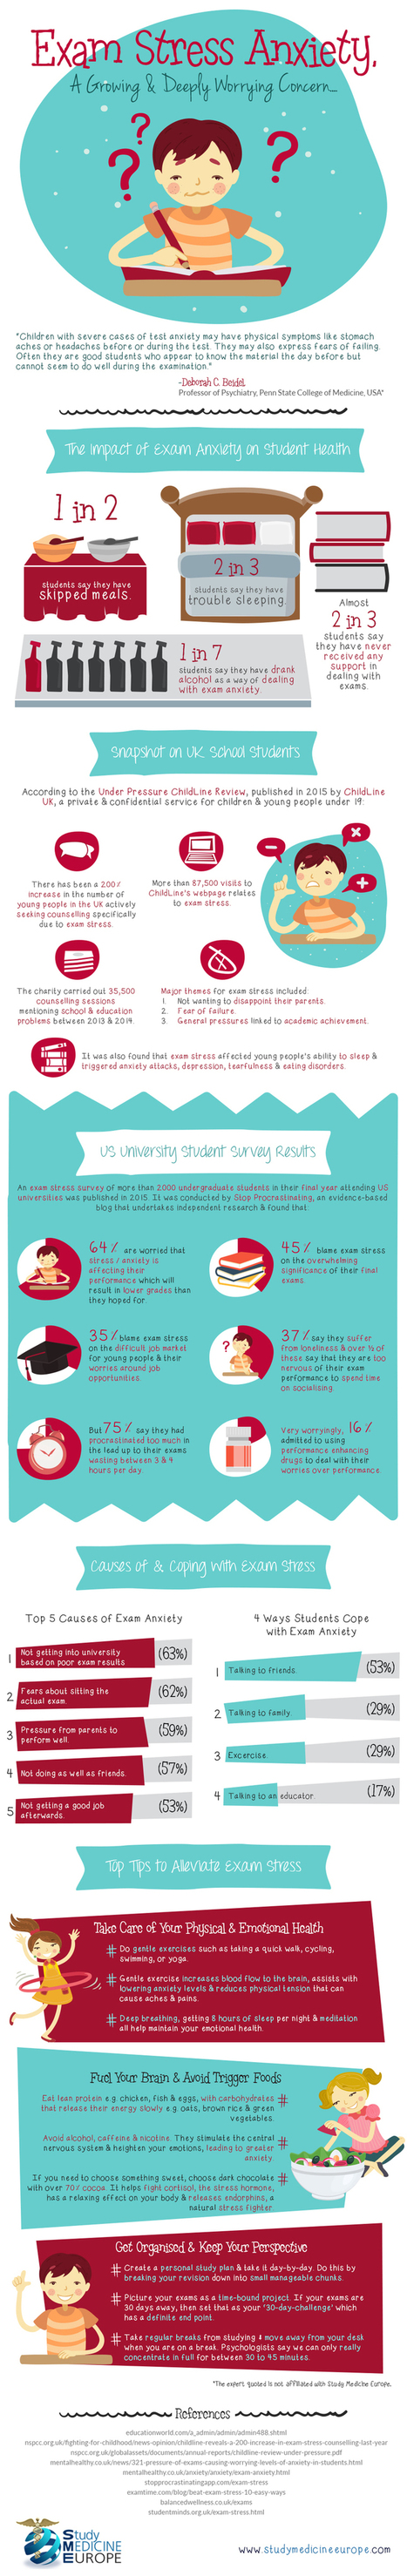 How to Cope With Stress During Exams Infographic - e-Learning Infographics | Pedalogica: educación y TIC | Scoop.it